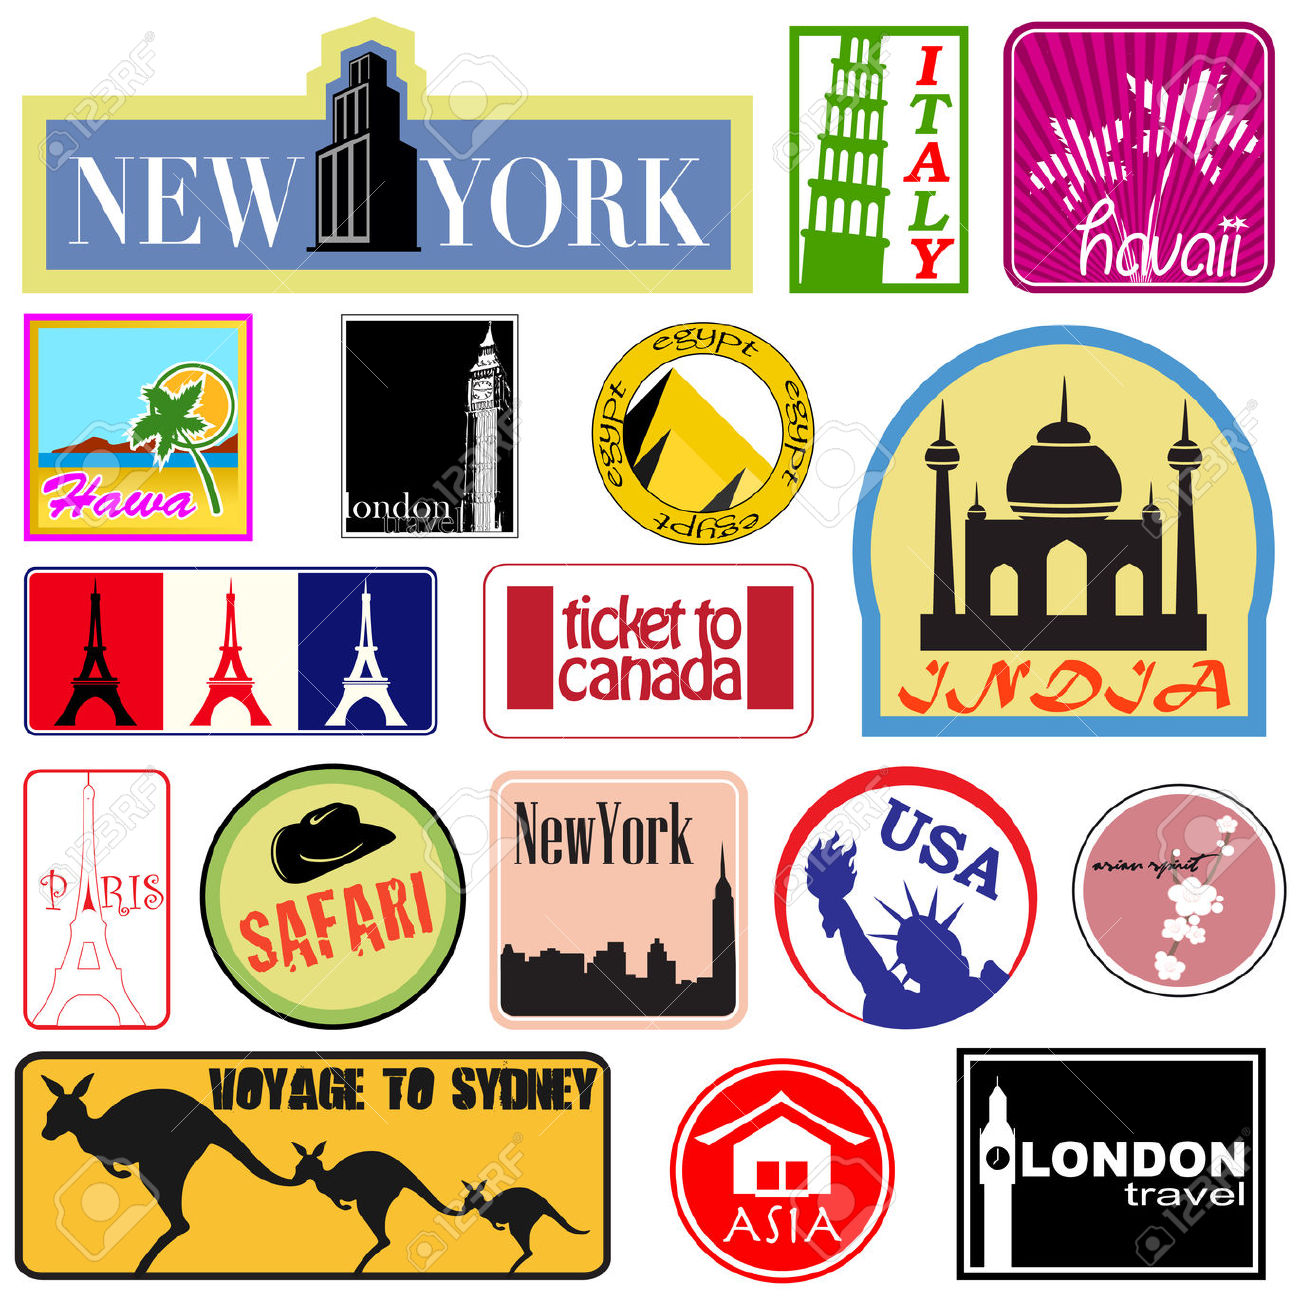 Free Travel Clipart Clip Art Pictures Gr-Free Travel Clipart Clip Art Pictures Graphics Illustrations-17